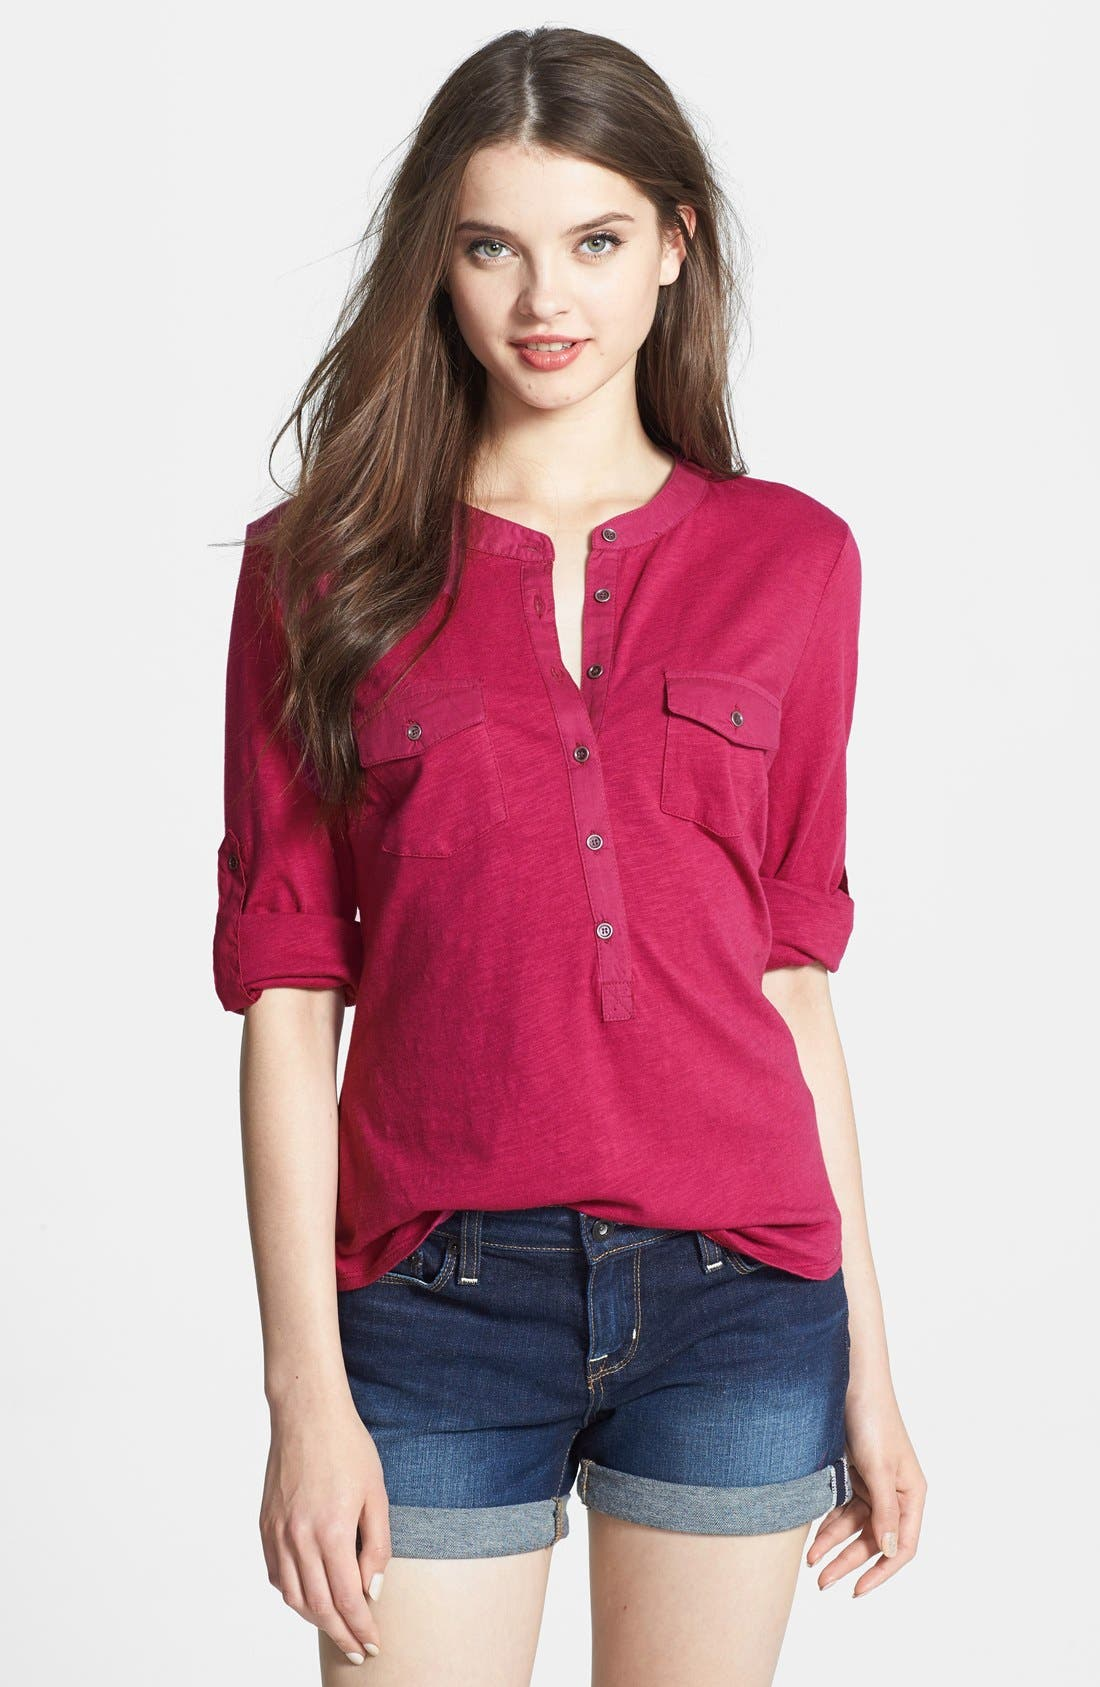 Alternate Image 1 Selected - Sandra Ingrish Roll Sleeve Slub Knit Top (Petite)